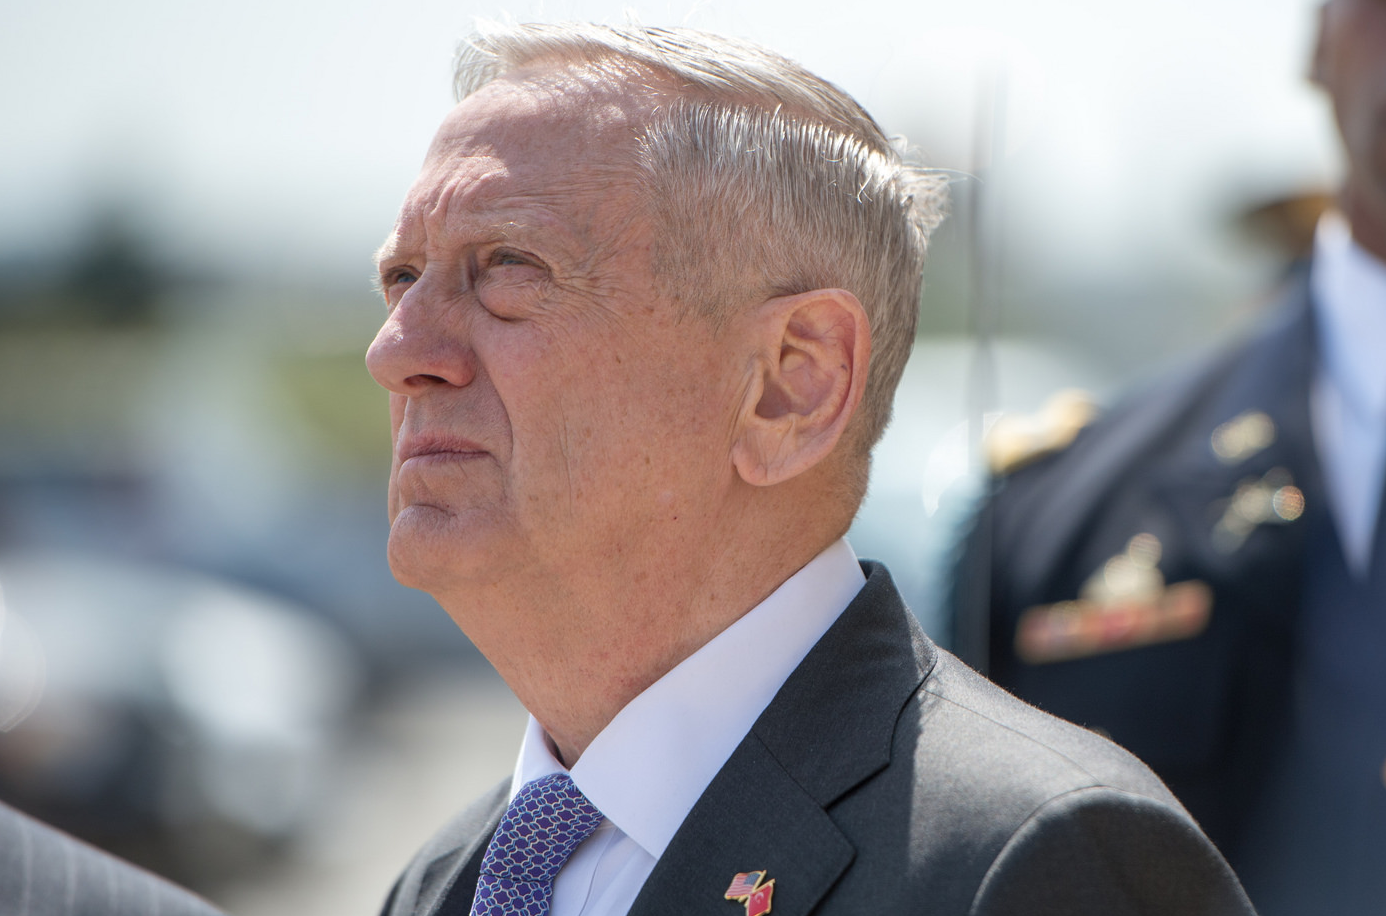 BREAKING: Here is Mattis' full statement to North Korea Featured